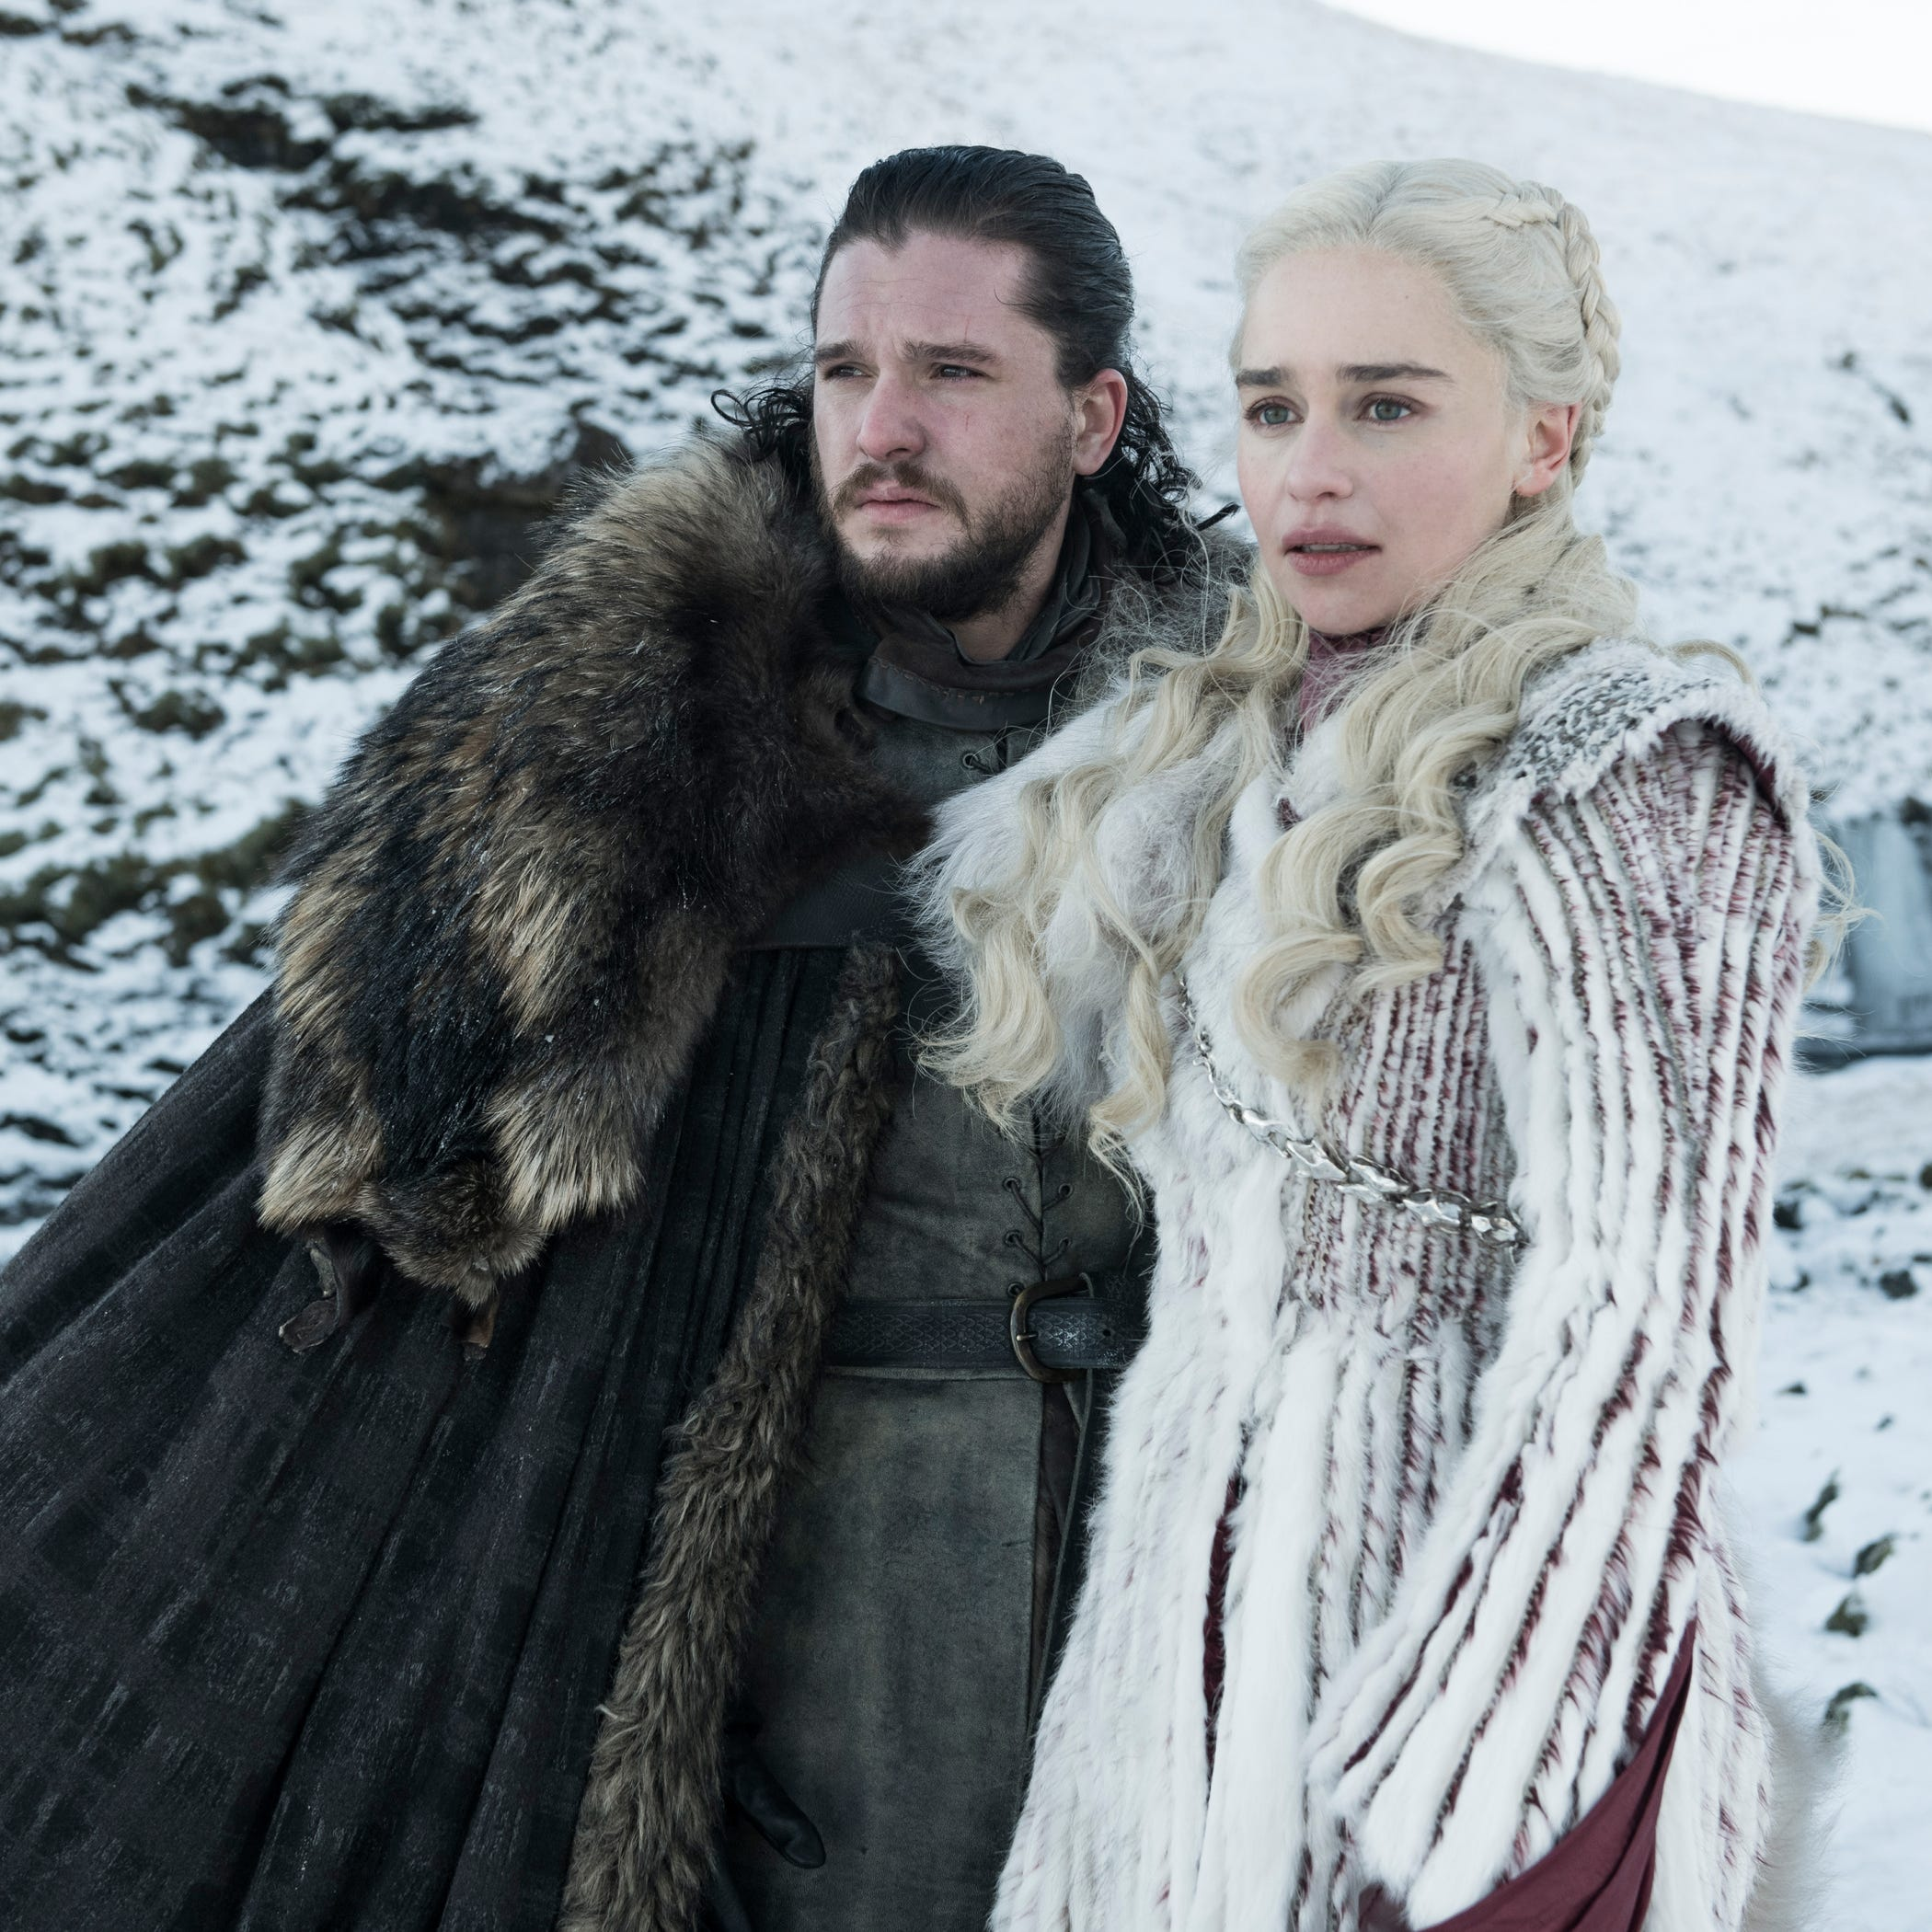 Game of Thrones' final season is here, and New Jersey is ready for the HBO finale